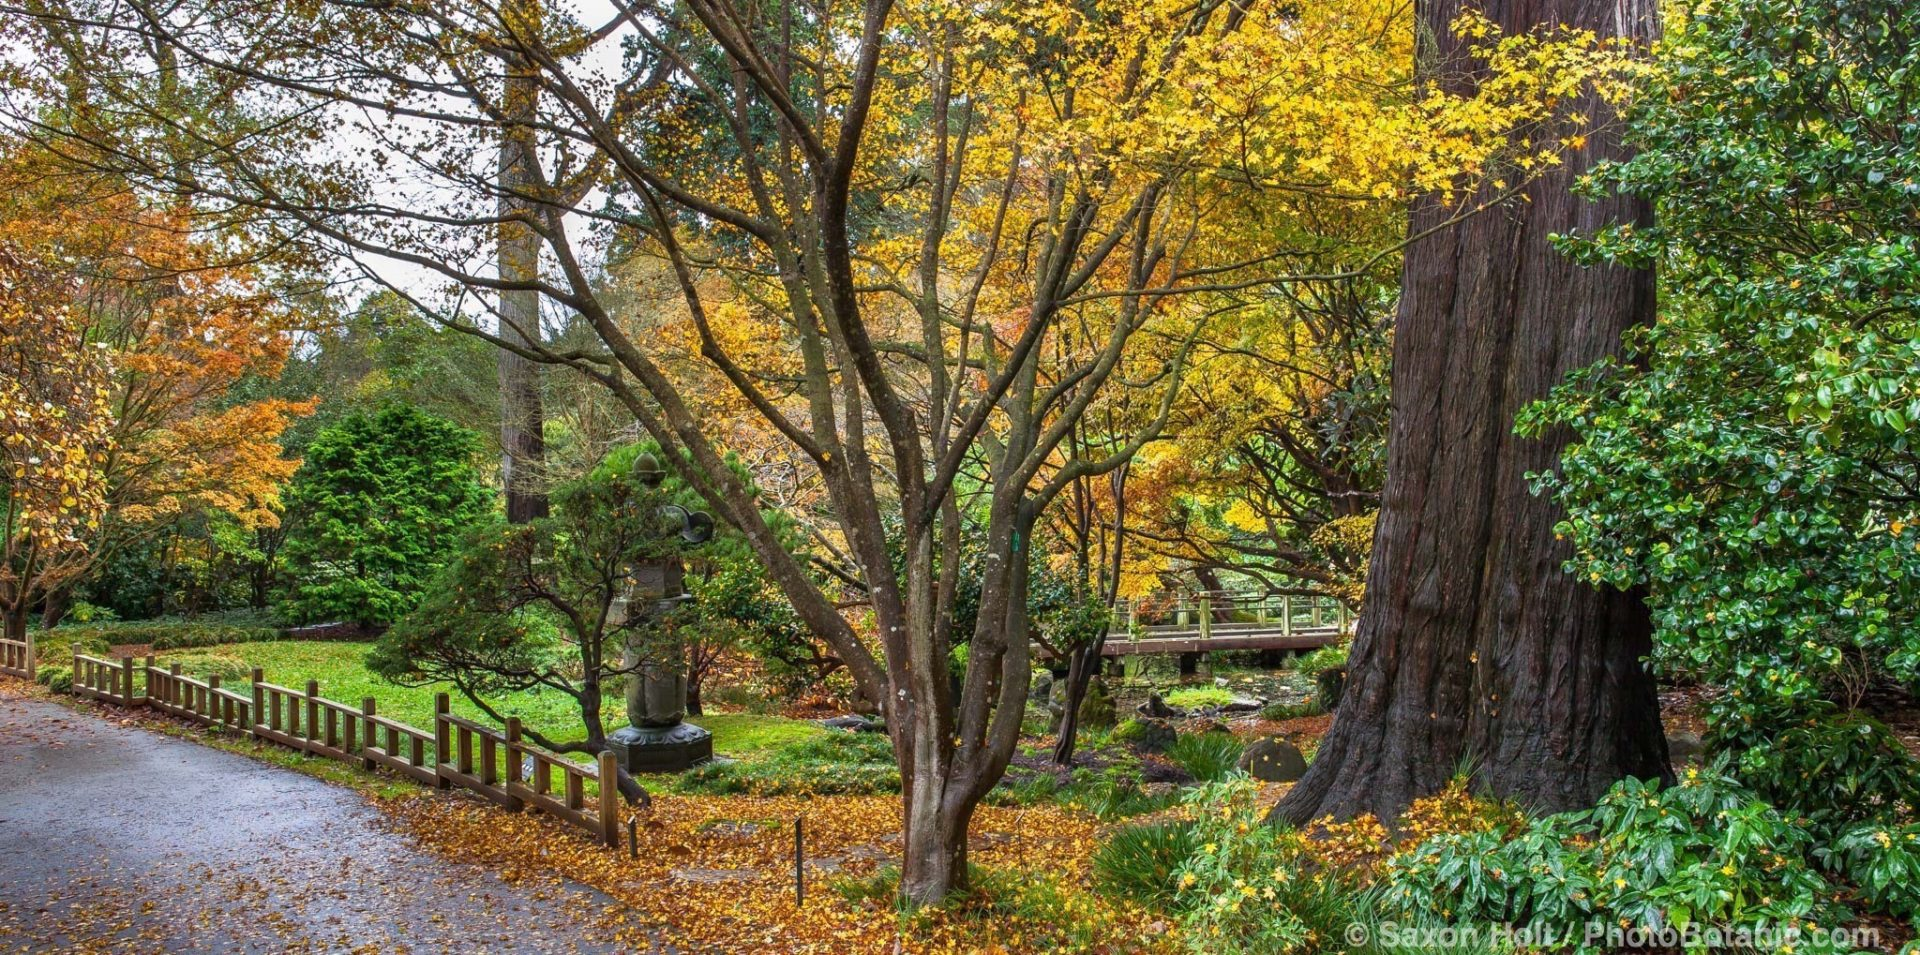 Walkway by Moon Viewing Garden in San Francisco Botanical Garden with fall foliage color in Japanese Maple trees, Acer palmatum.